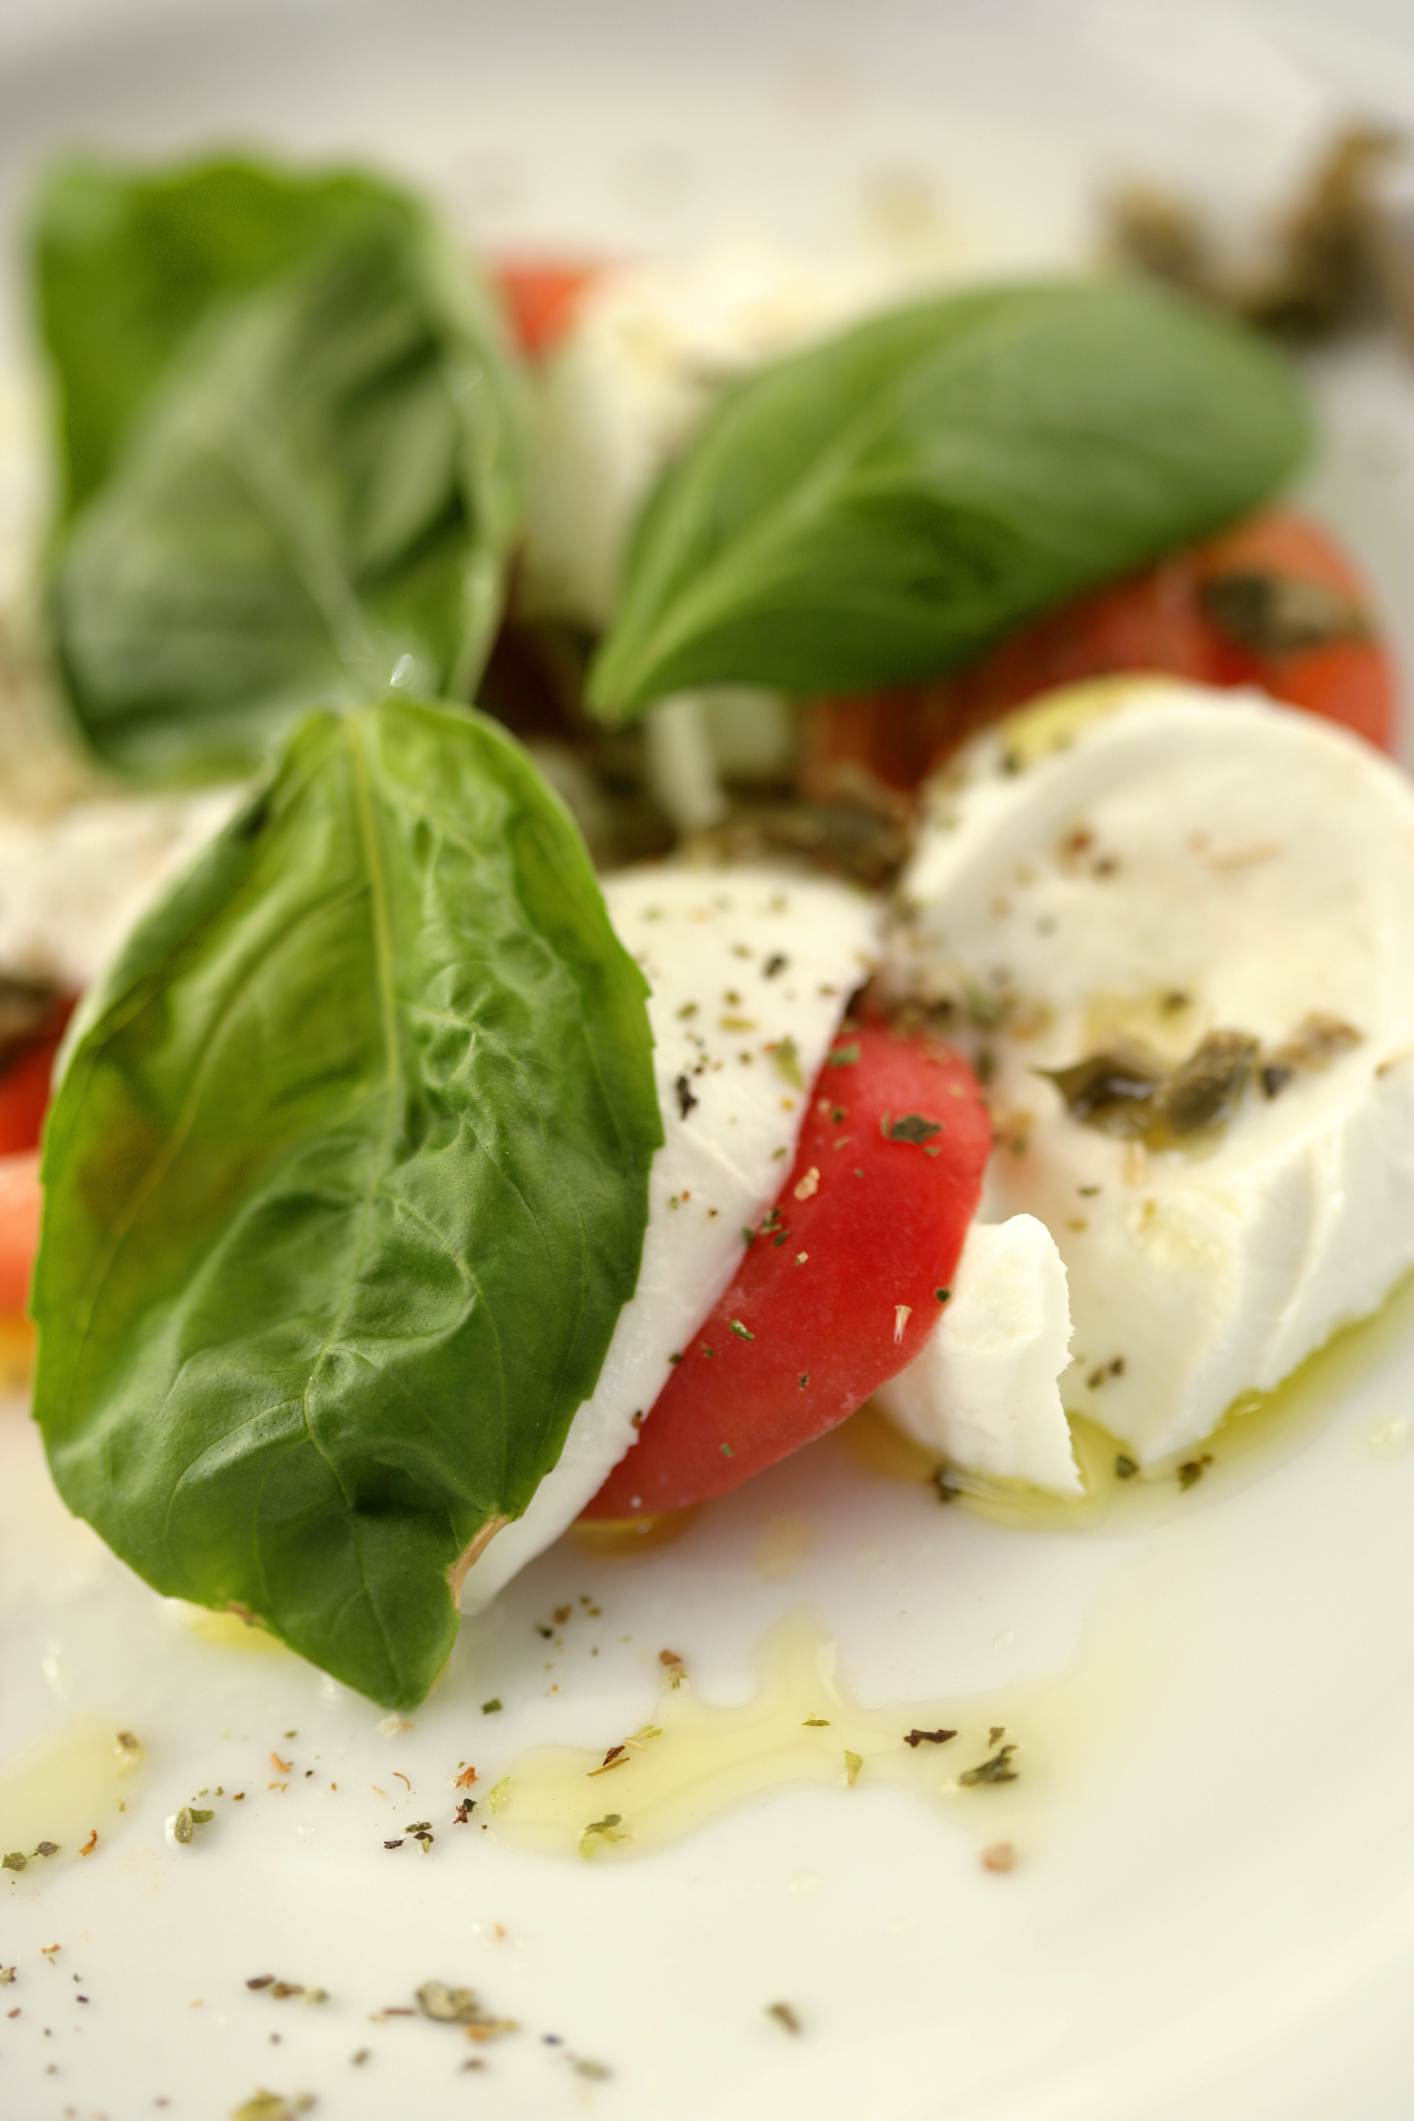 Mozzarella cheese is a source of vitamin B-12.